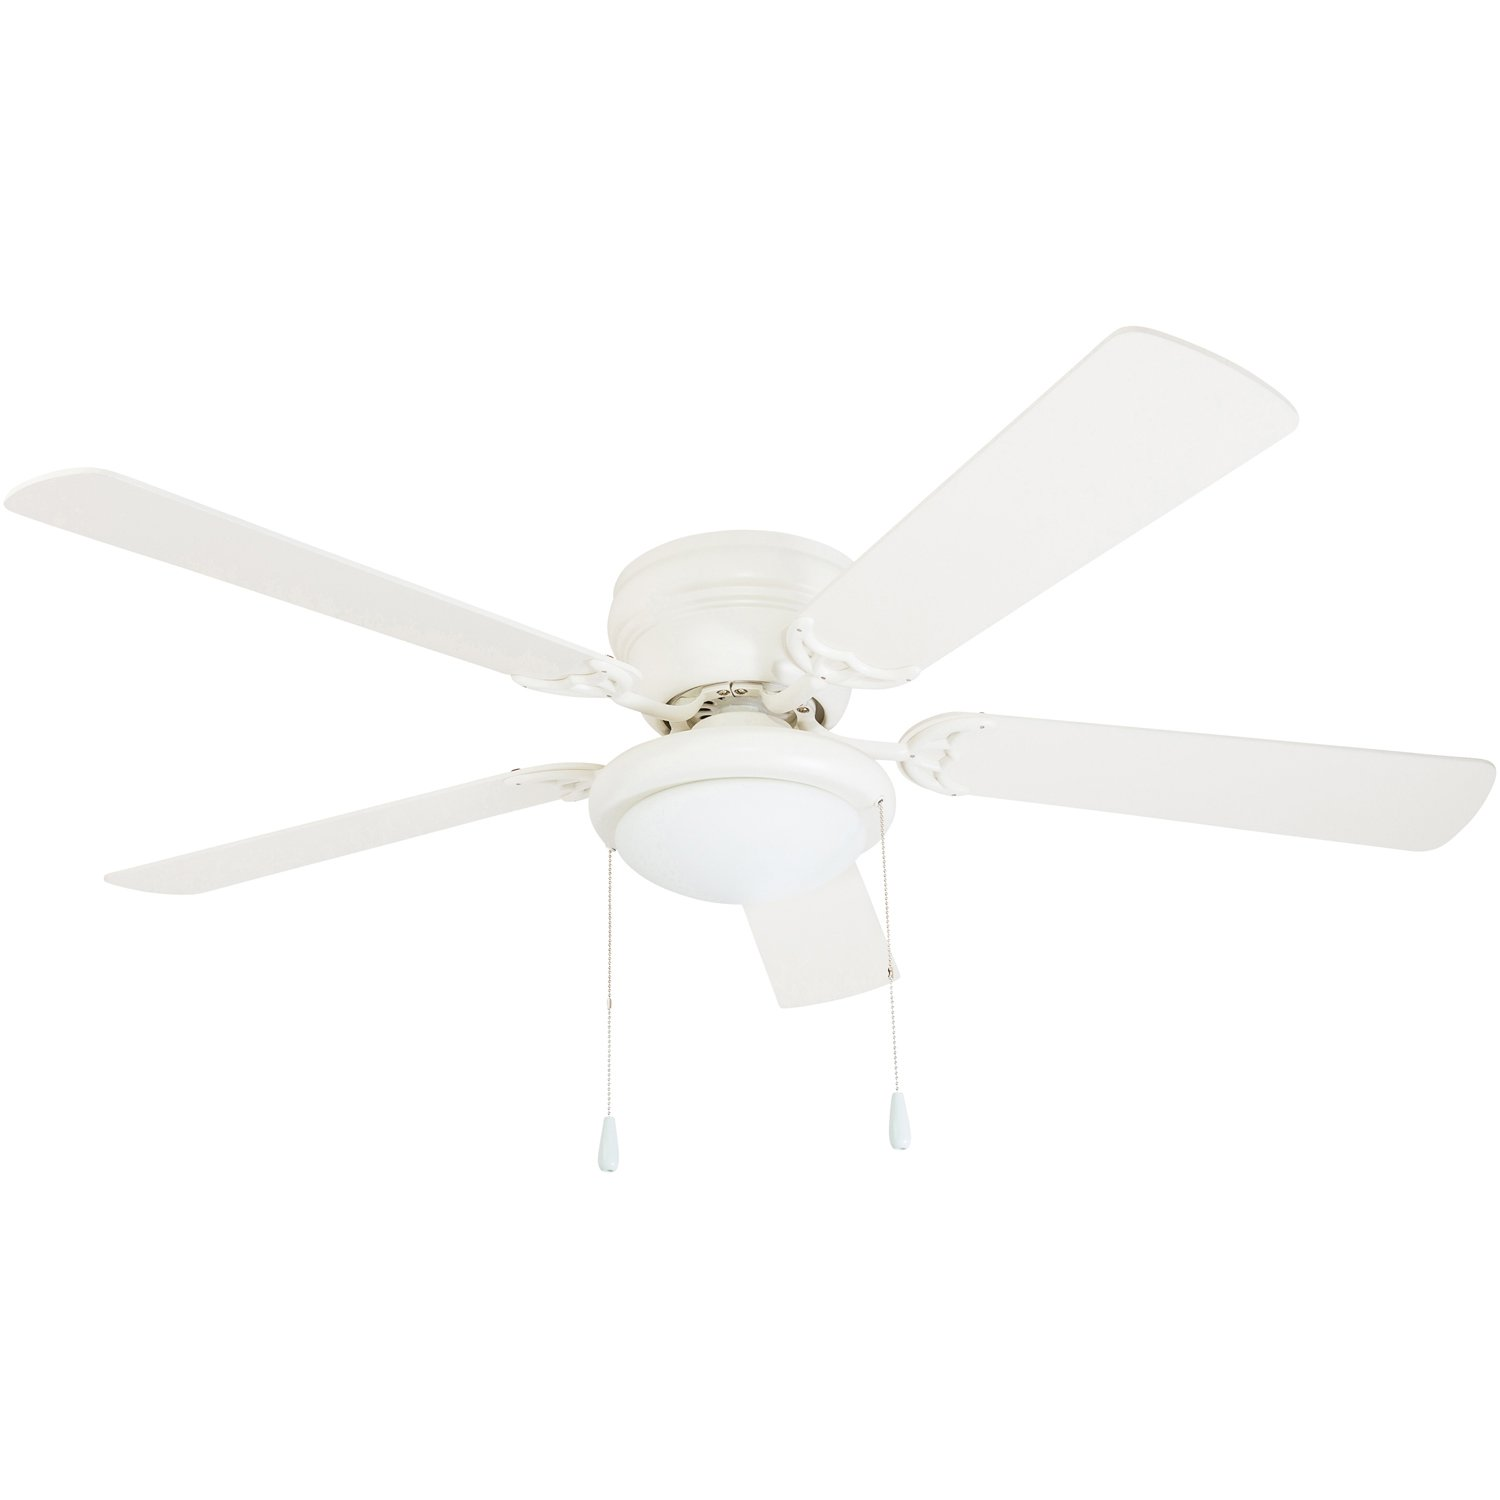 Portage Bay 50254 Hugger 52'' White West Hill Ceiling Fan with Bowl Light Kit